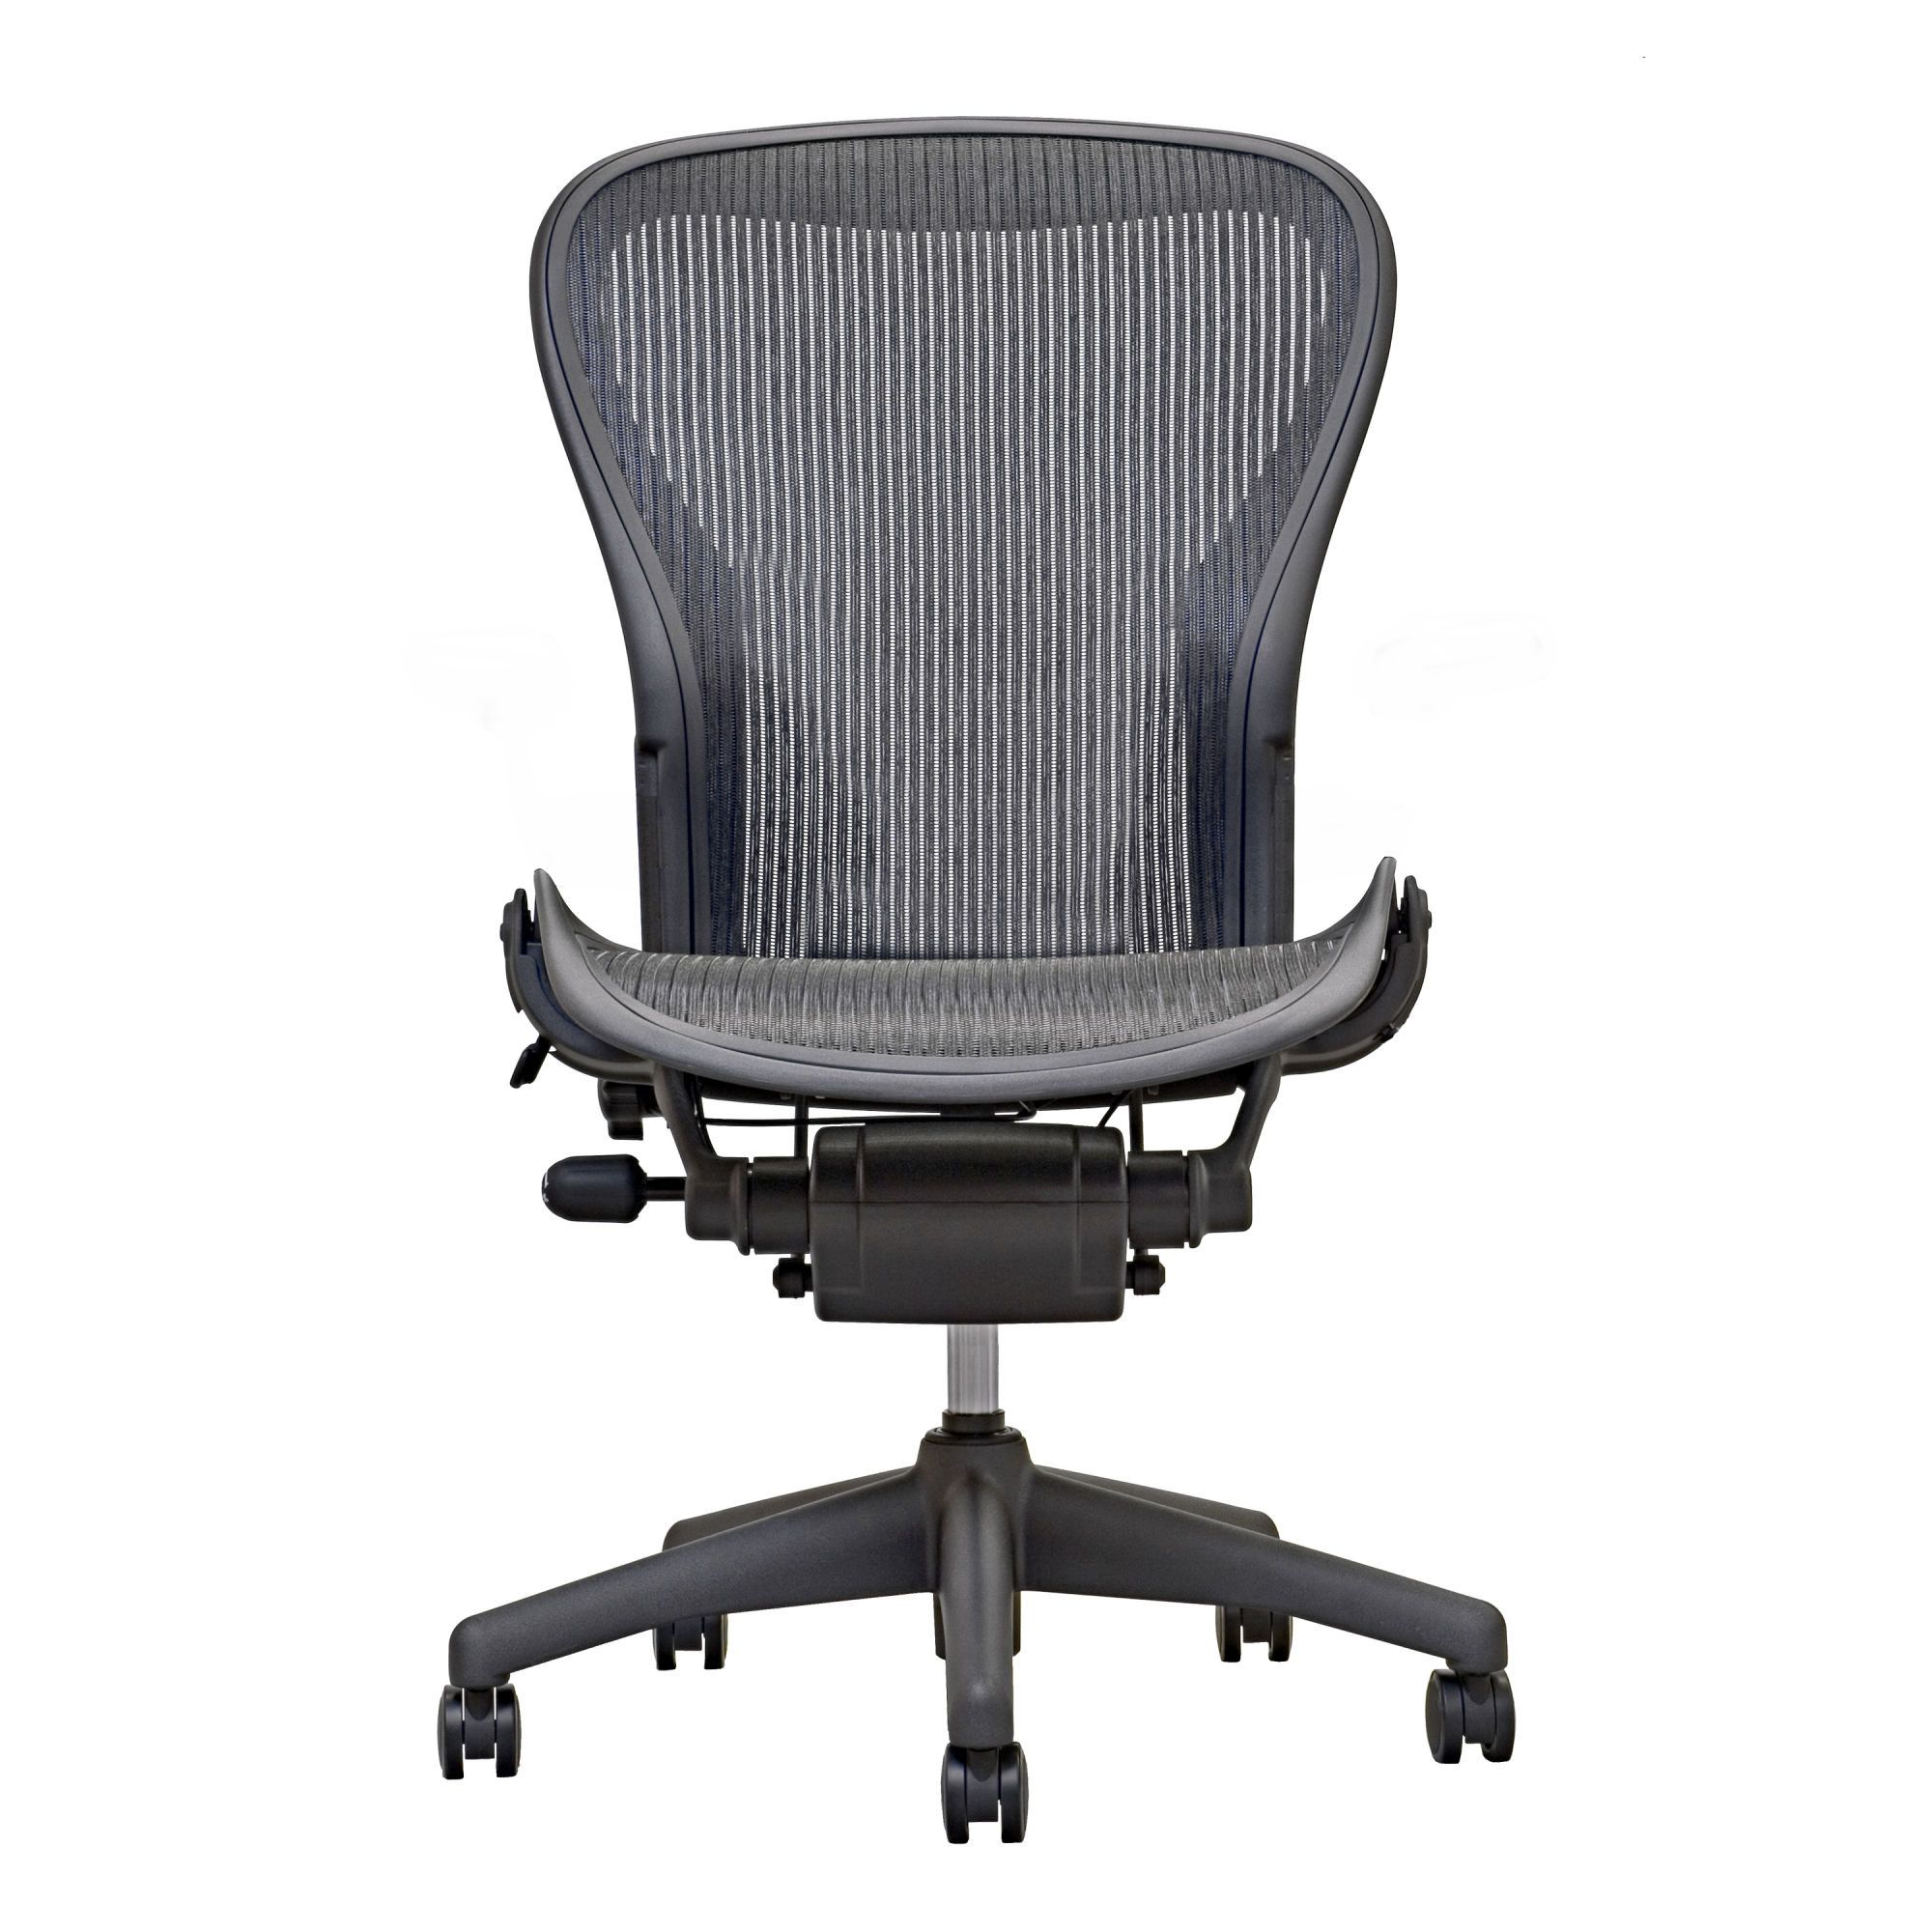 Aeron Chair by Herman Miller Armless preowned Carbon